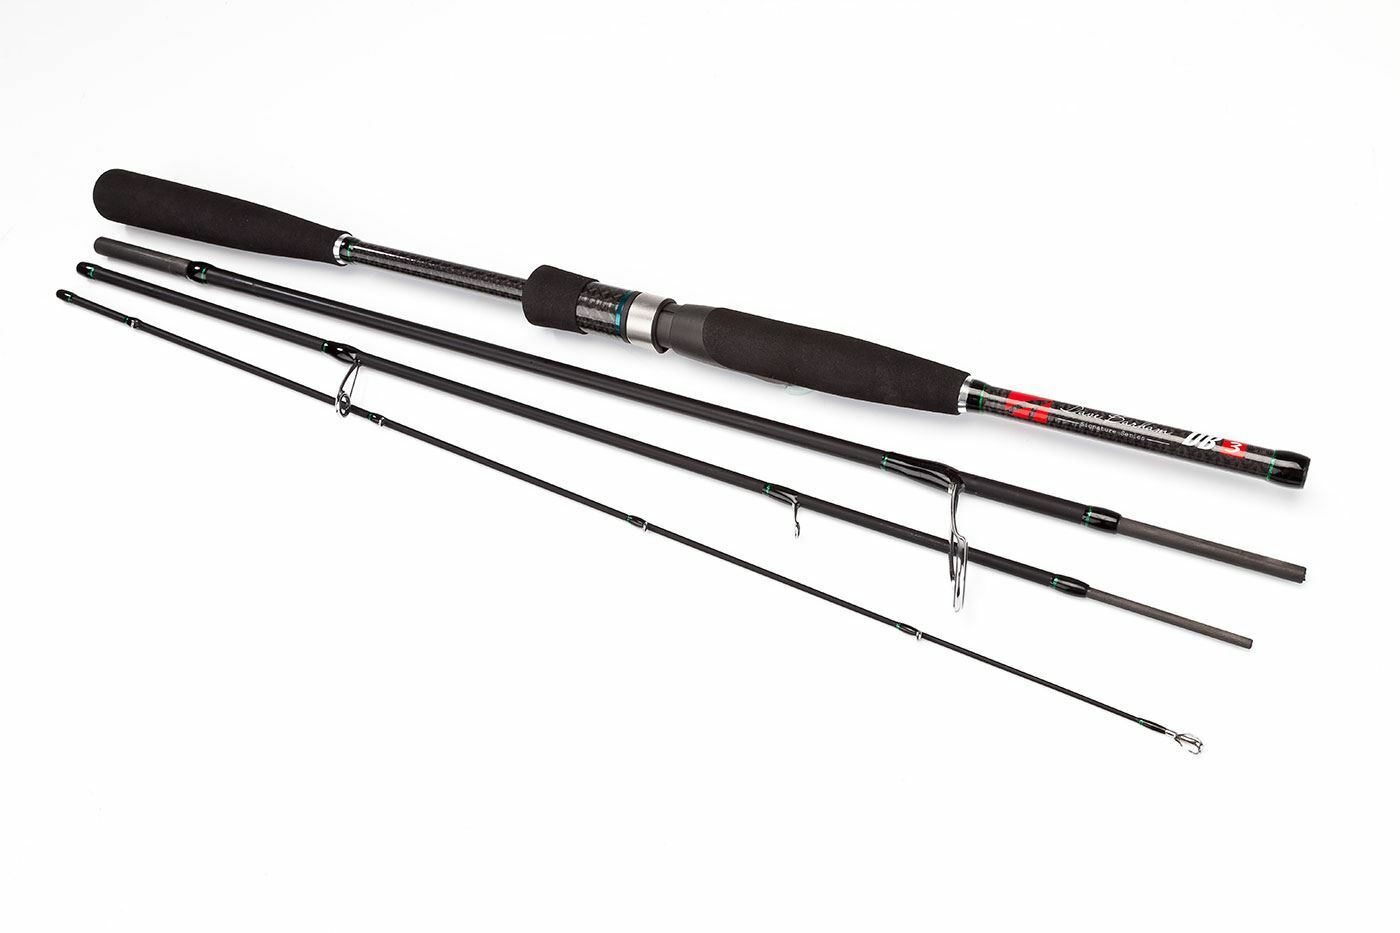 Dave Barham DB3 Travel 7' 7-35g Fishing Rod